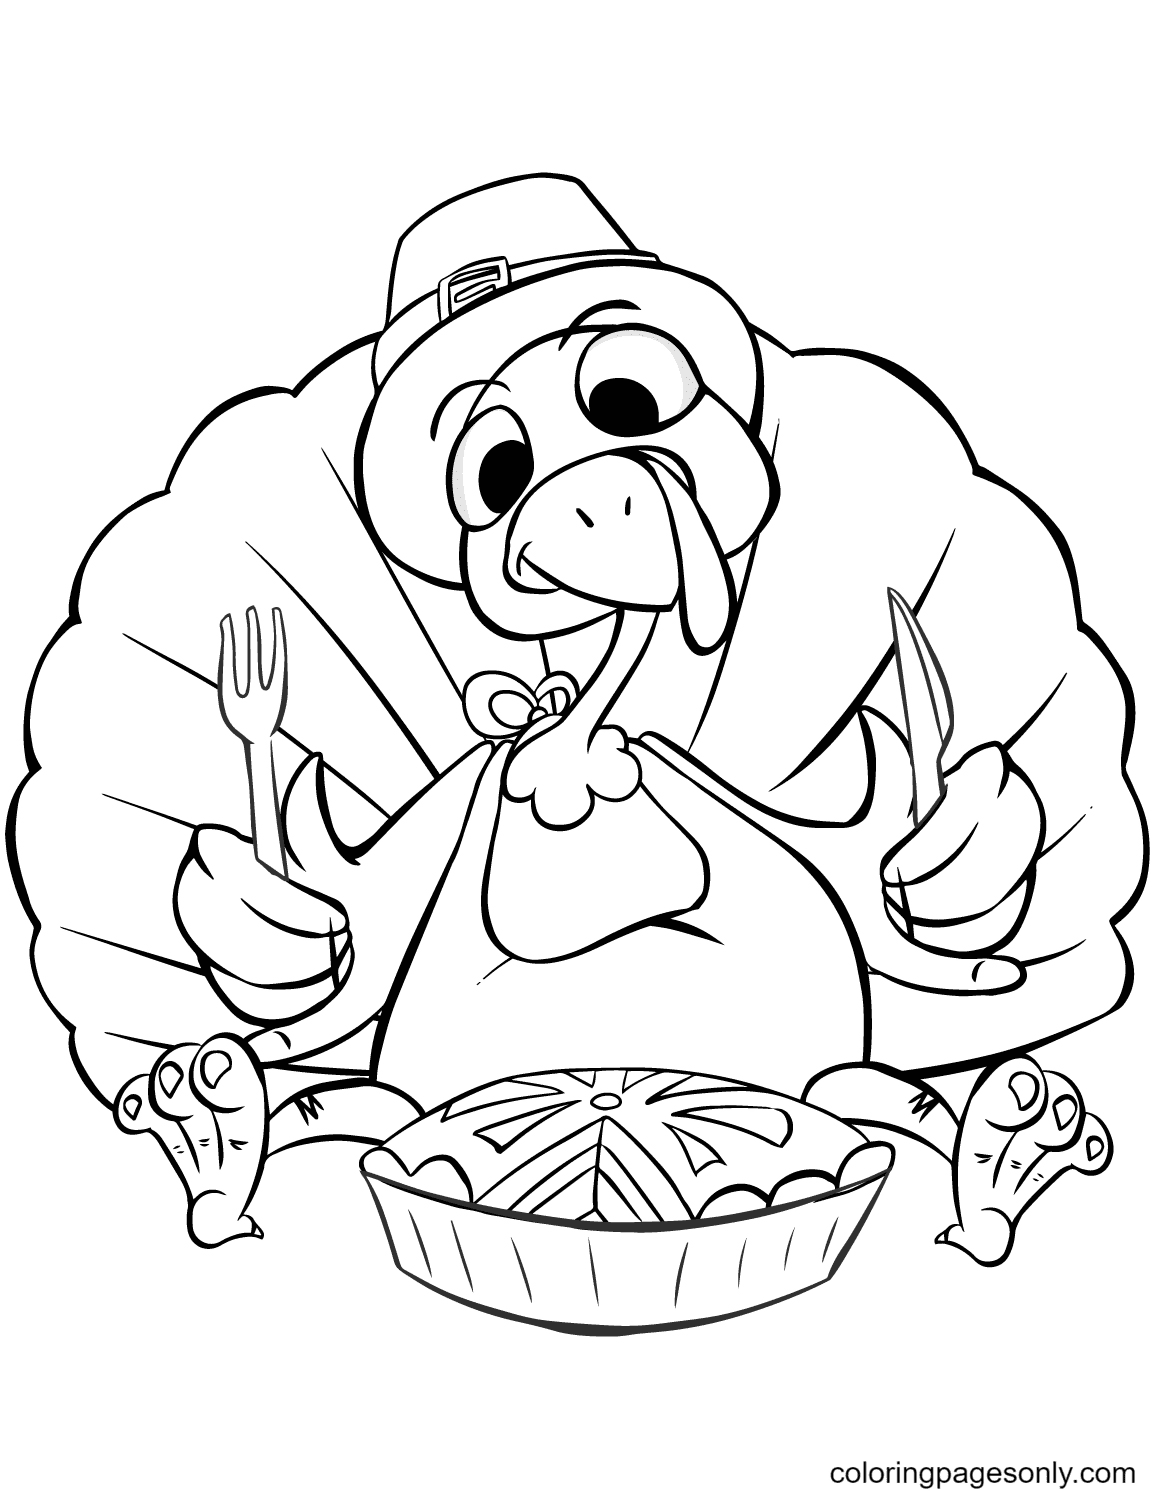 Thanksgiving Dinner Turkey Coloring Page